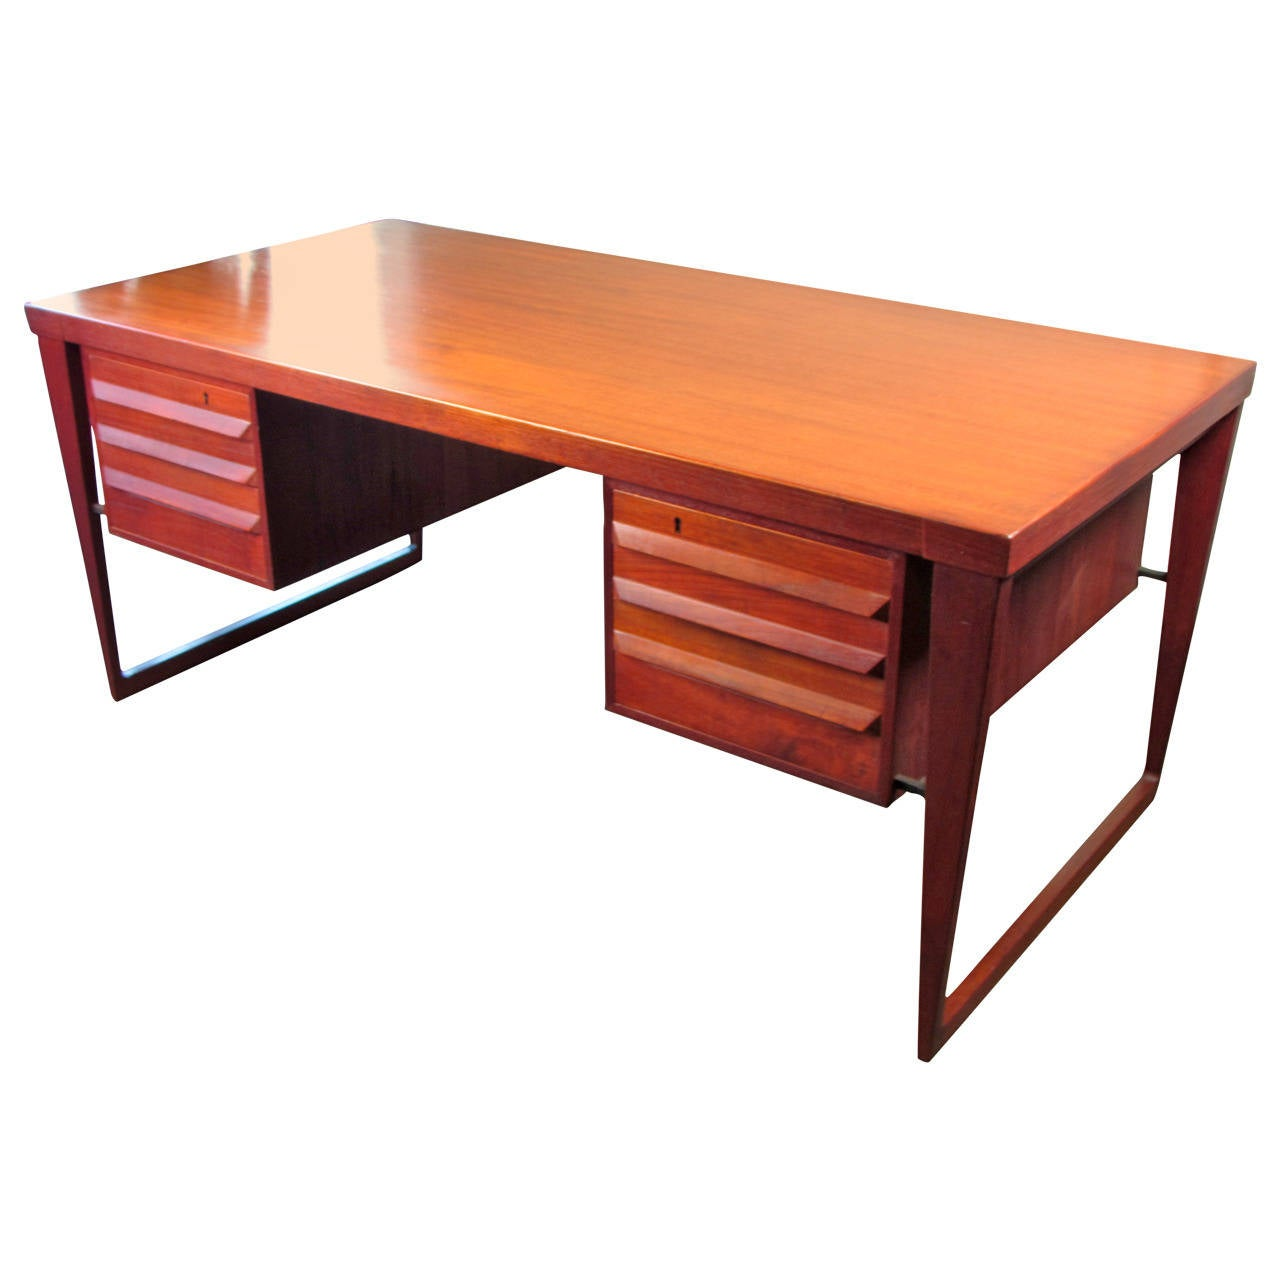 Handsome Danish Modern Executive Desk On Sled Base By Kai